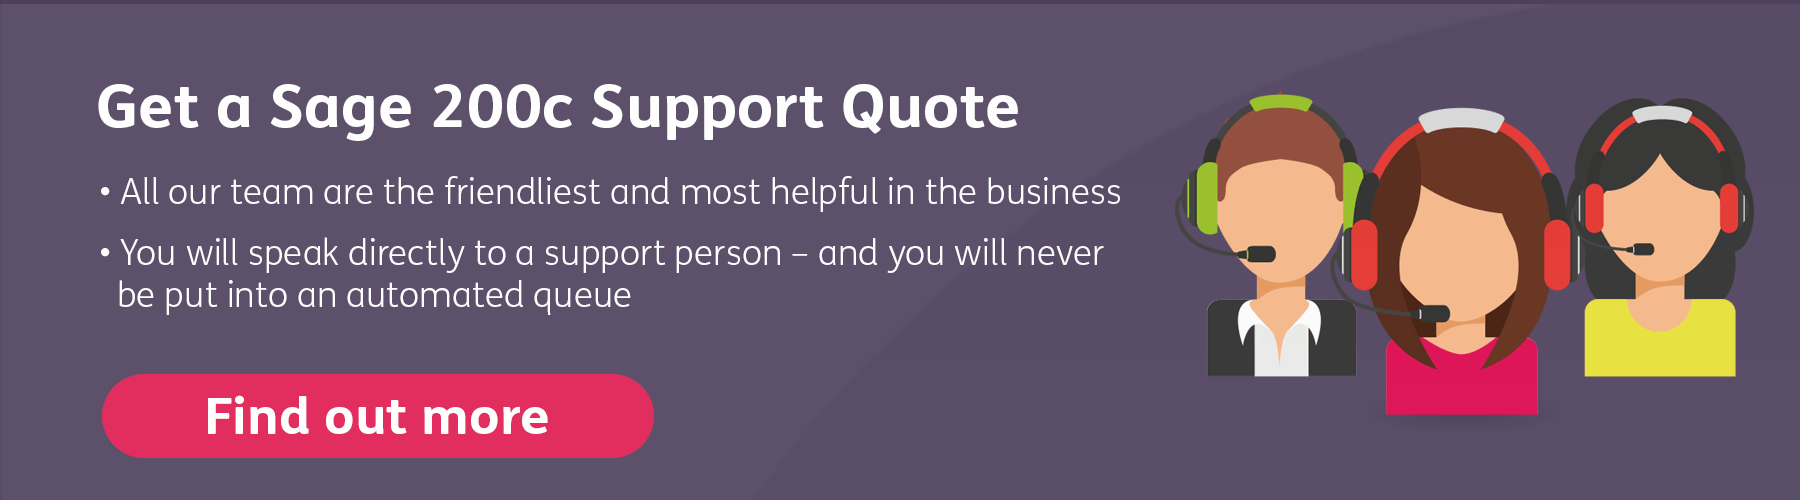 Get-a-sage-200c-support-quote-cta